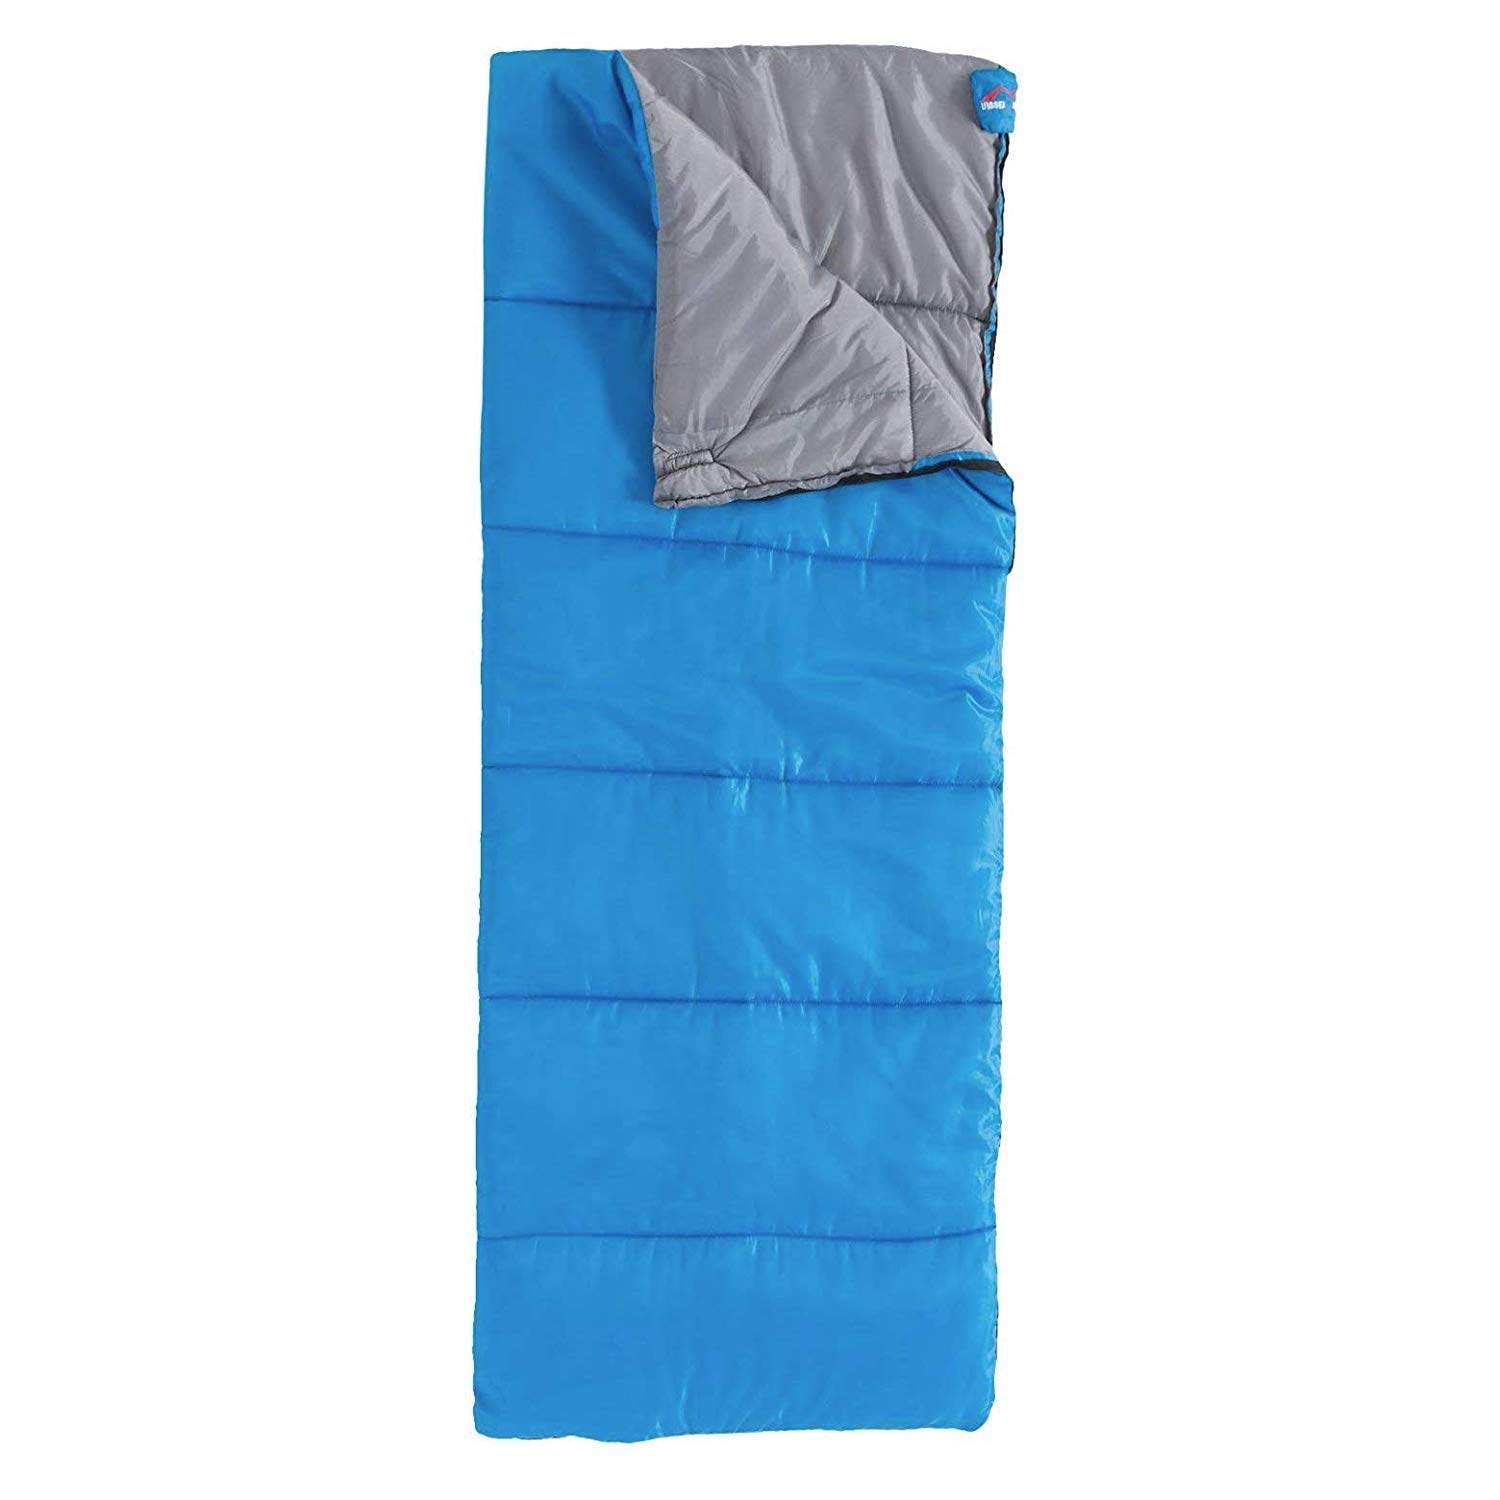 An image of Suisse Sport Sleeping Bag